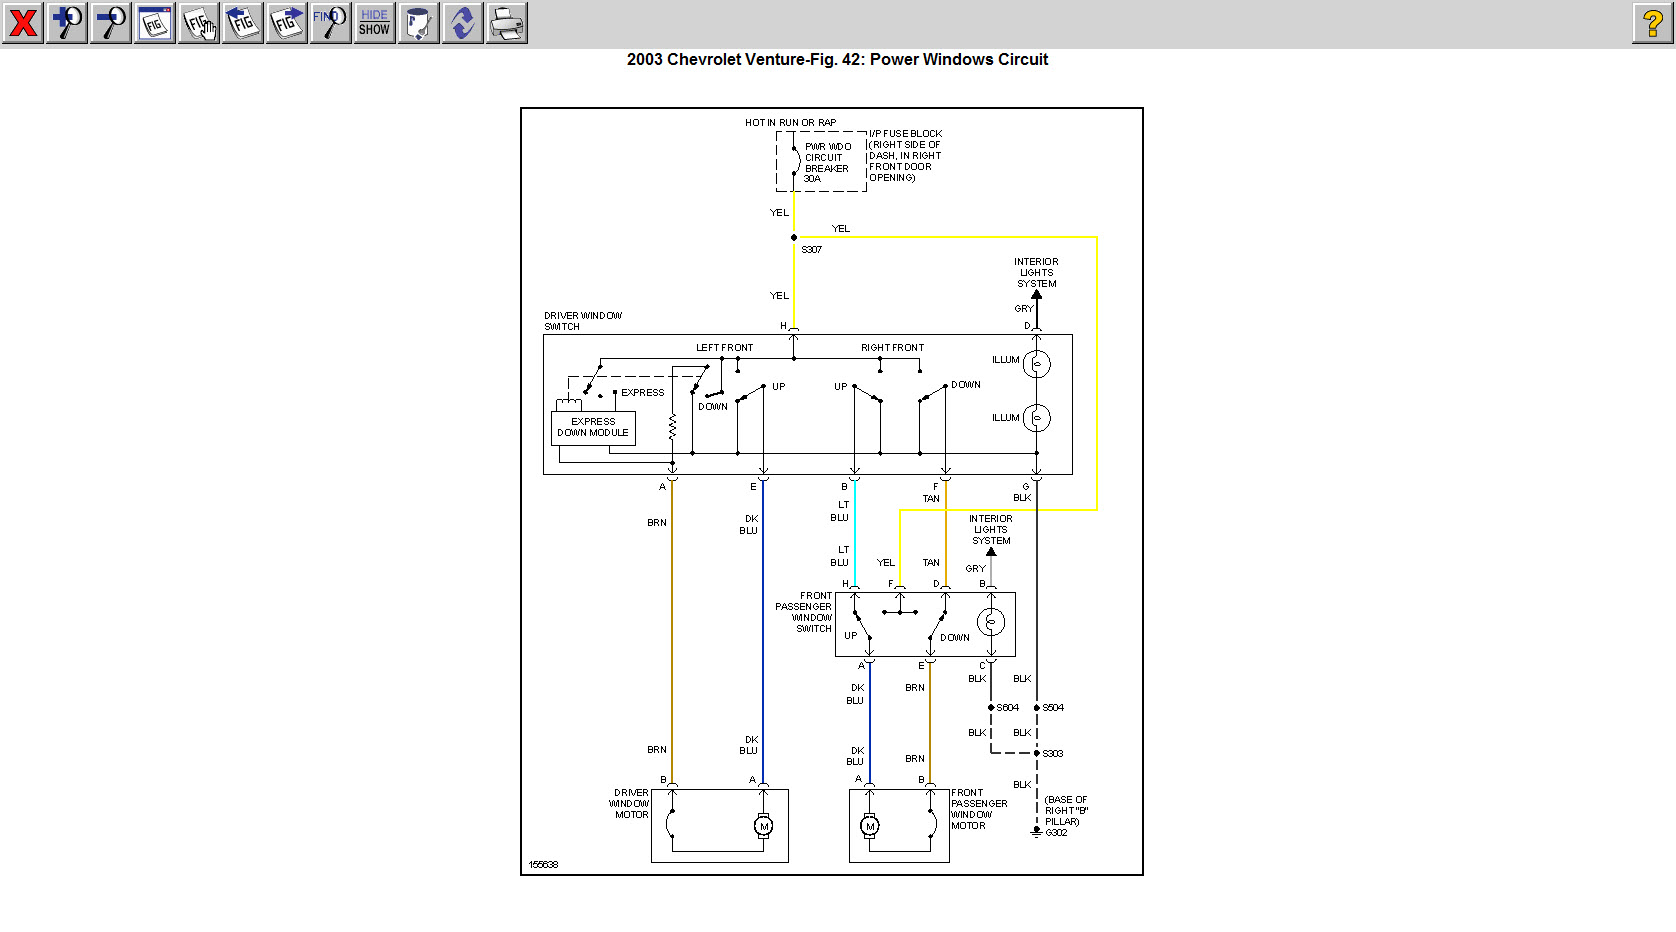 wiring diagram computer 2003 venture library of wiring diagram u2022 rh jessascott co